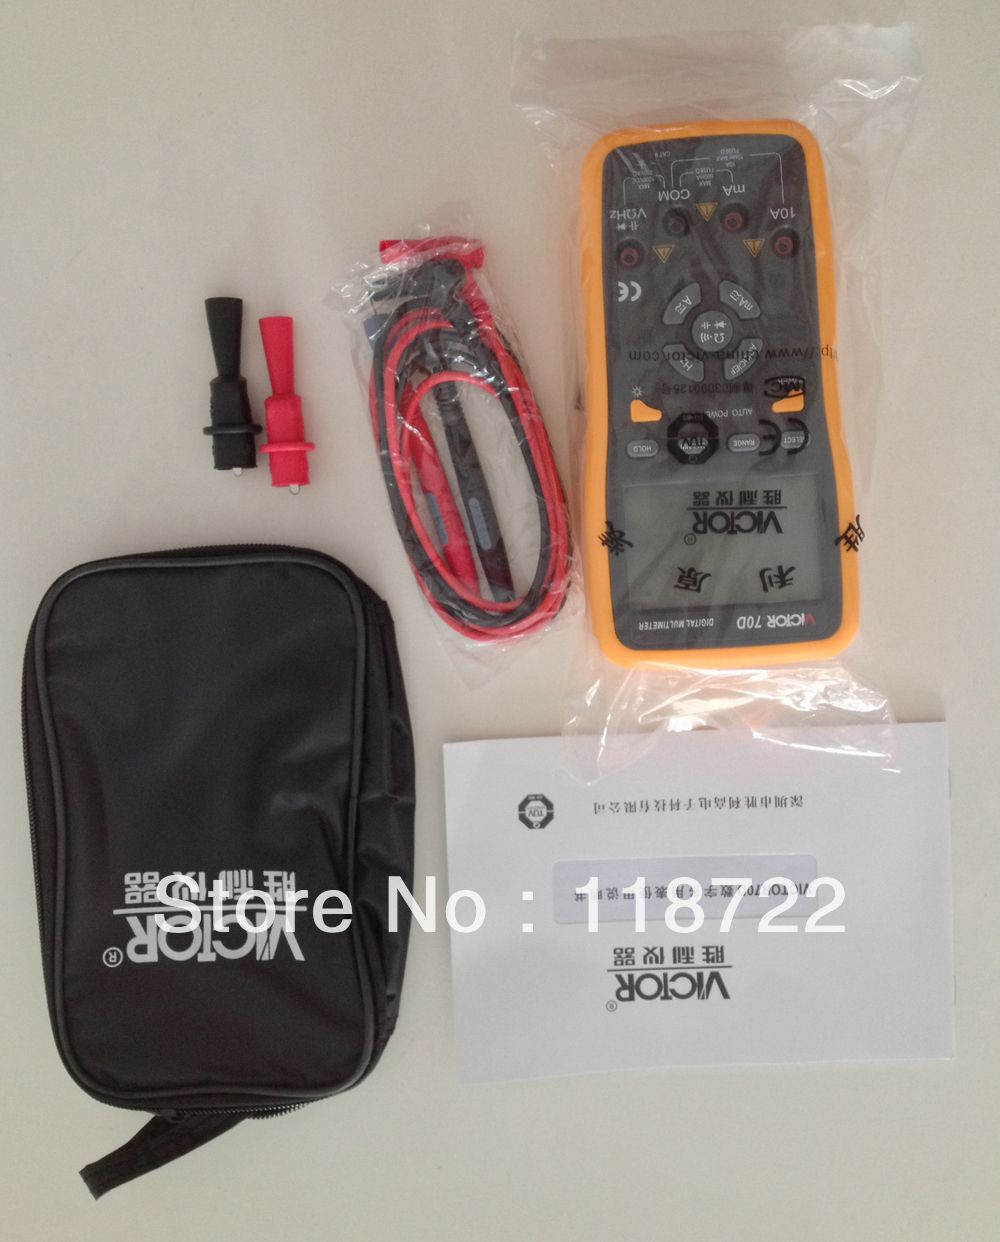 VC70D Digital Multimeter,Coninuity buzzer,Backlight,61 section analog bar graph display,Key-press operation